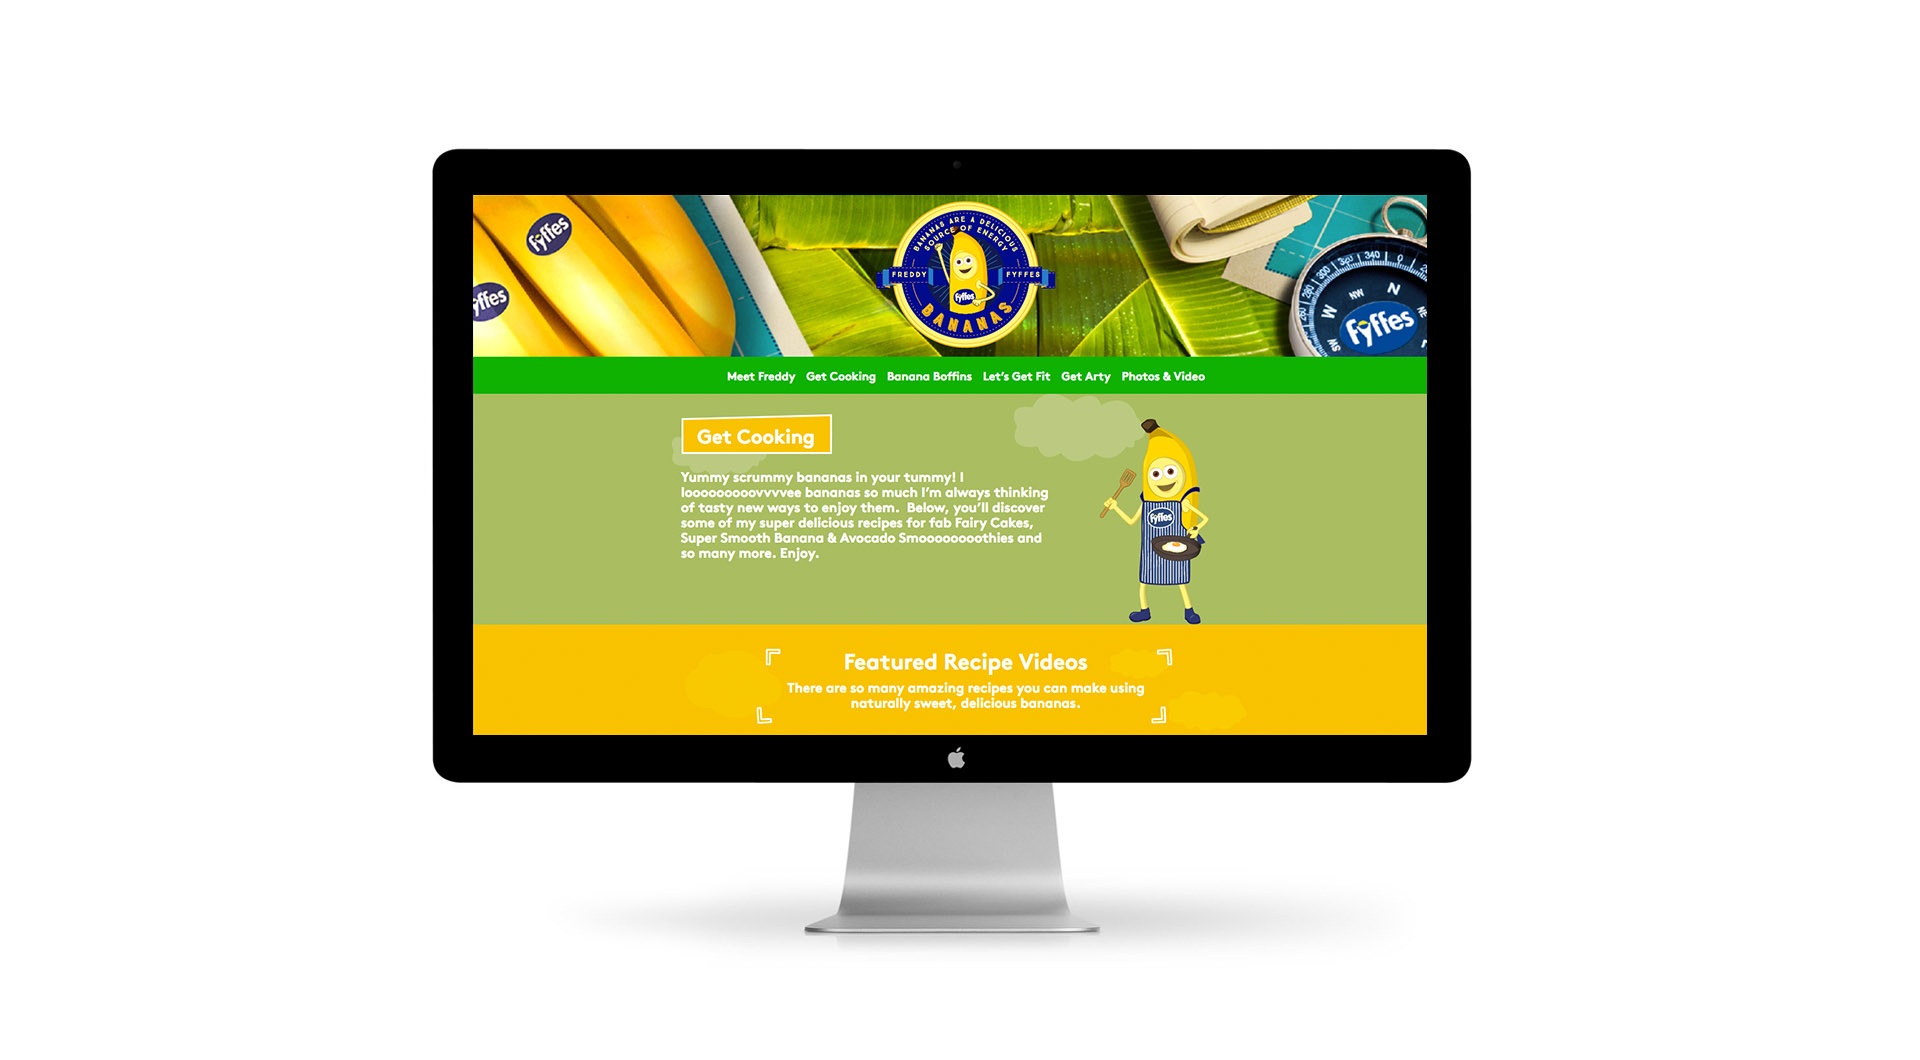 Freddy Fyffes Website Design Freddy Fyffes Freddy Fyffes Website Lets Get Cooking.